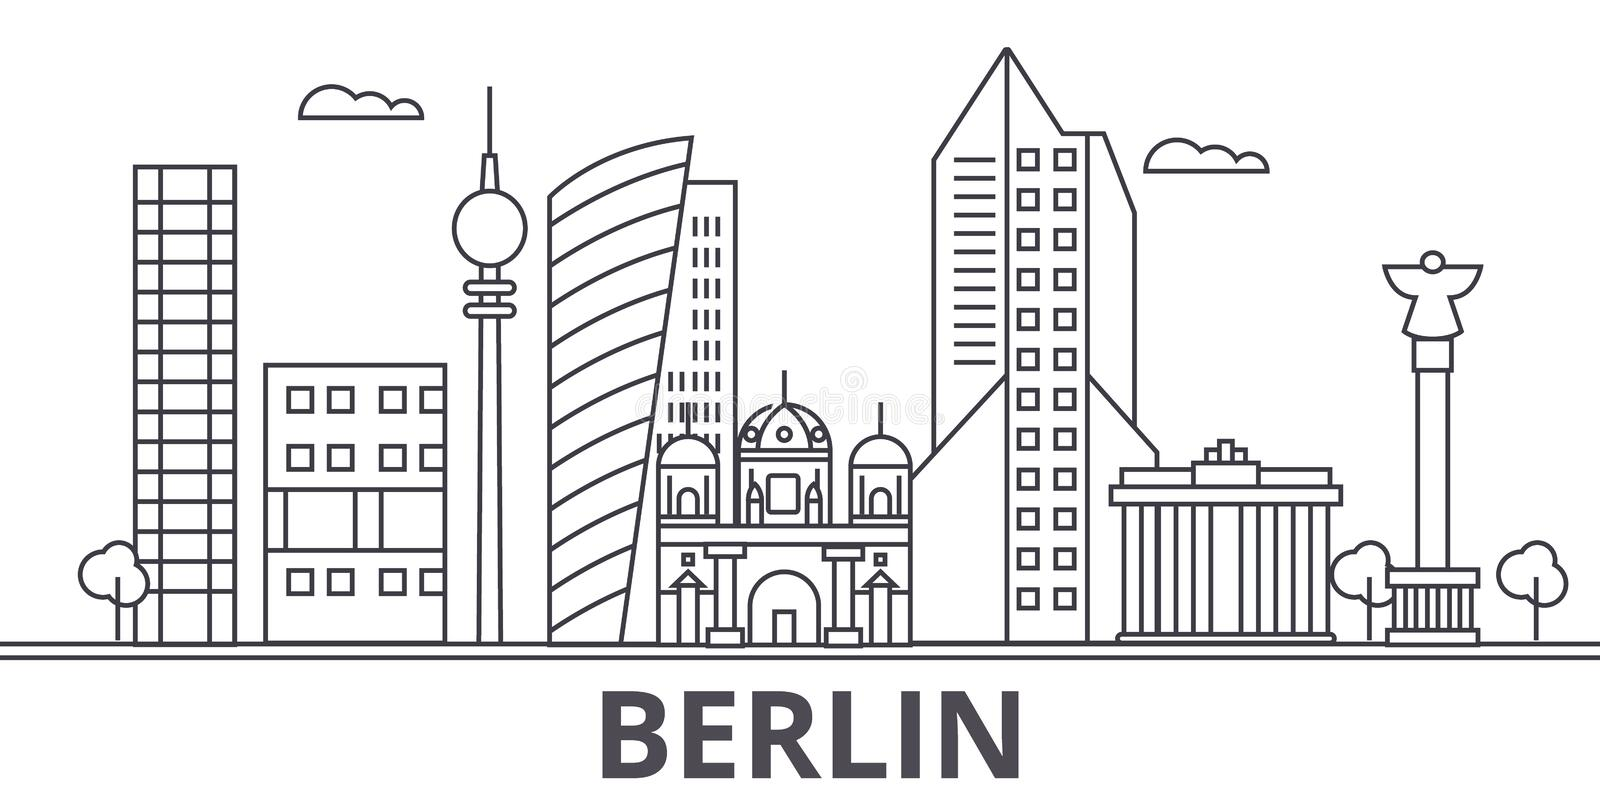 Berlin architecture line skyline illustration. Linear vector cityscape with famous landmarks, city sights, design icons royalty free illustration